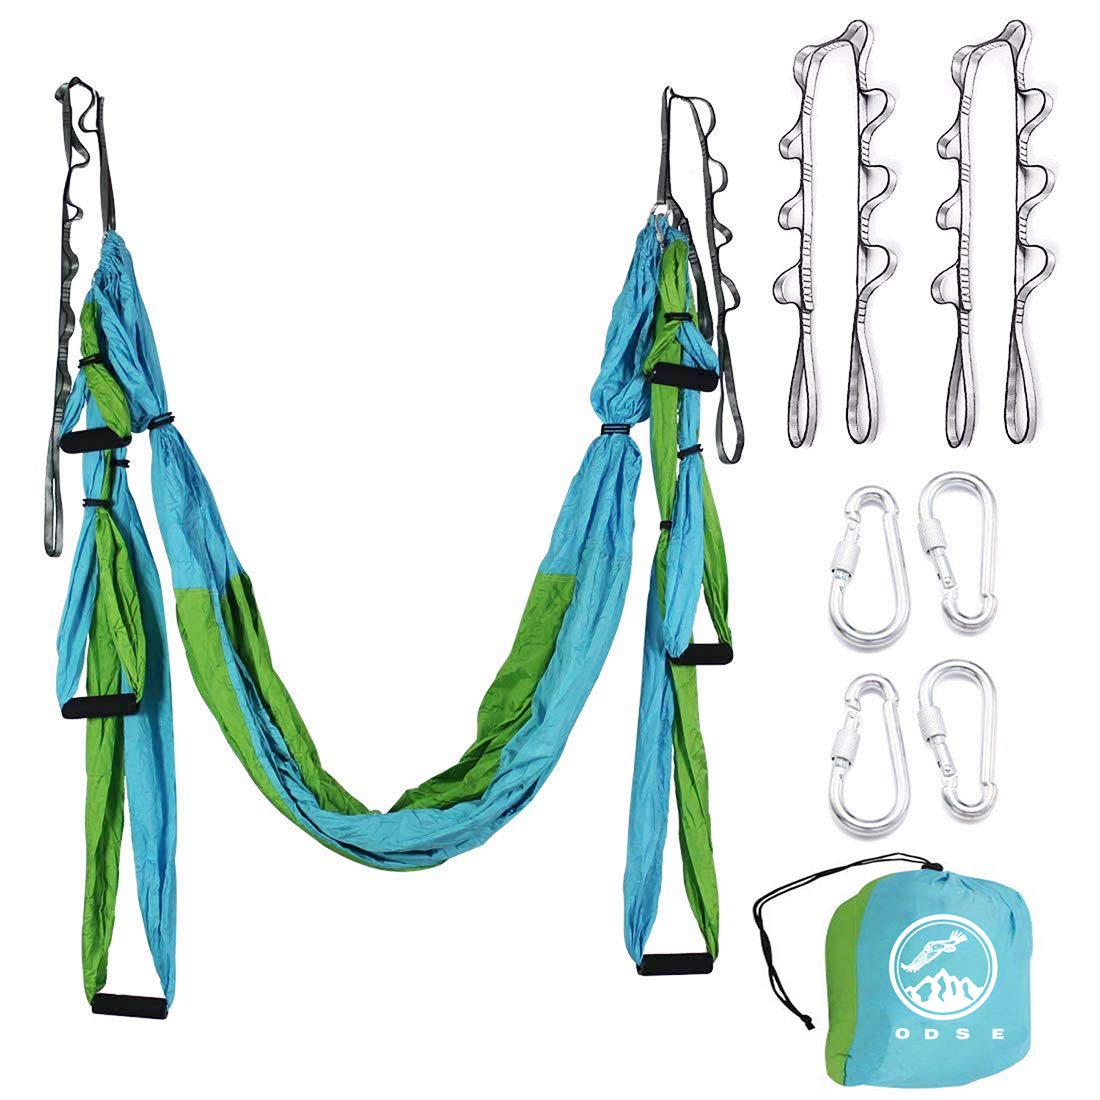 ODSE Aerial Yoga Swing – Ultra Strong Antigravity Yoga Hammock Sling Inversion Tool for Air Yoga Inversion Exercises – 2 Extensions Straps Included